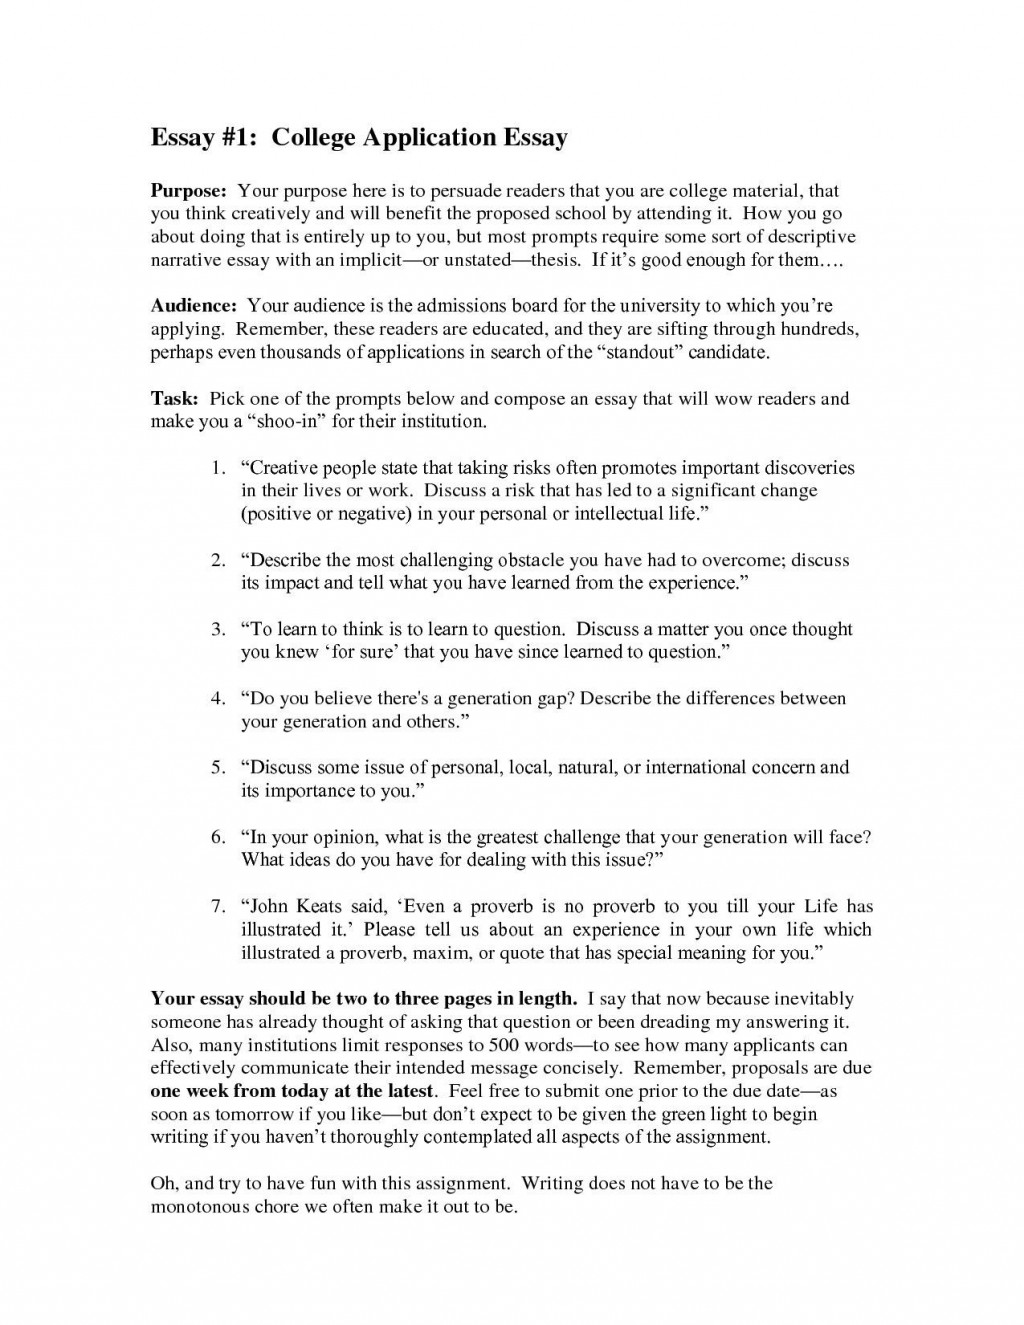 007 Exemplification Essay Example Examples How To Write High School Question And Answer Good Topics Imageersuasive Lett Questions For English College Spm Students Archaicawful Conclusion Illustration Large